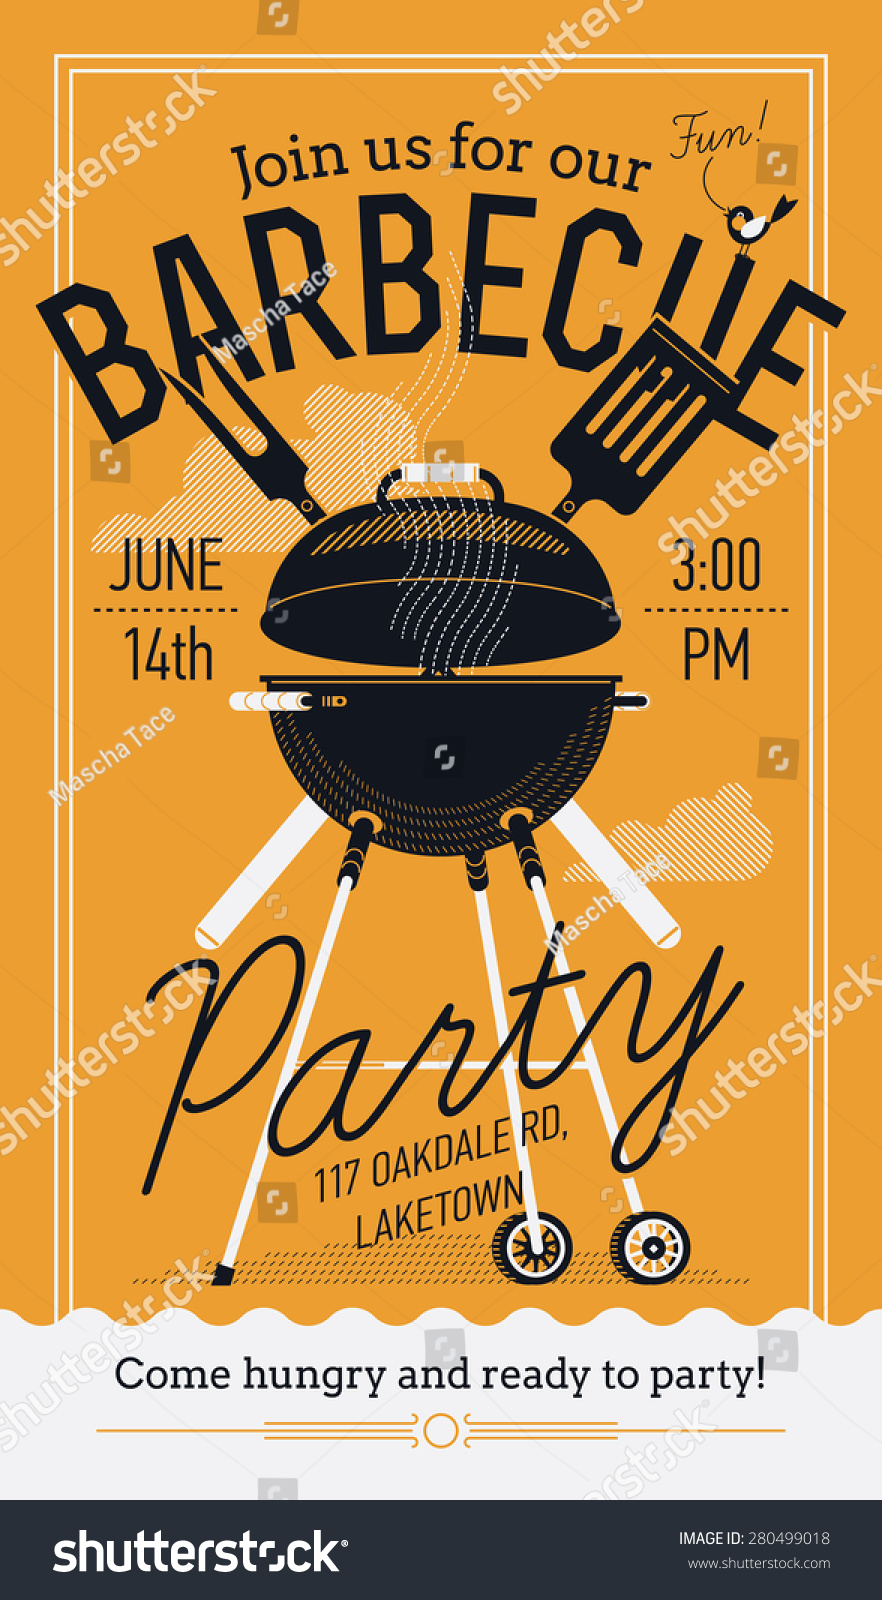 lovely vector barbecue party invitation design stock vector 280499018 shutterstock. Black Bedroom Furniture Sets. Home Design Ideas